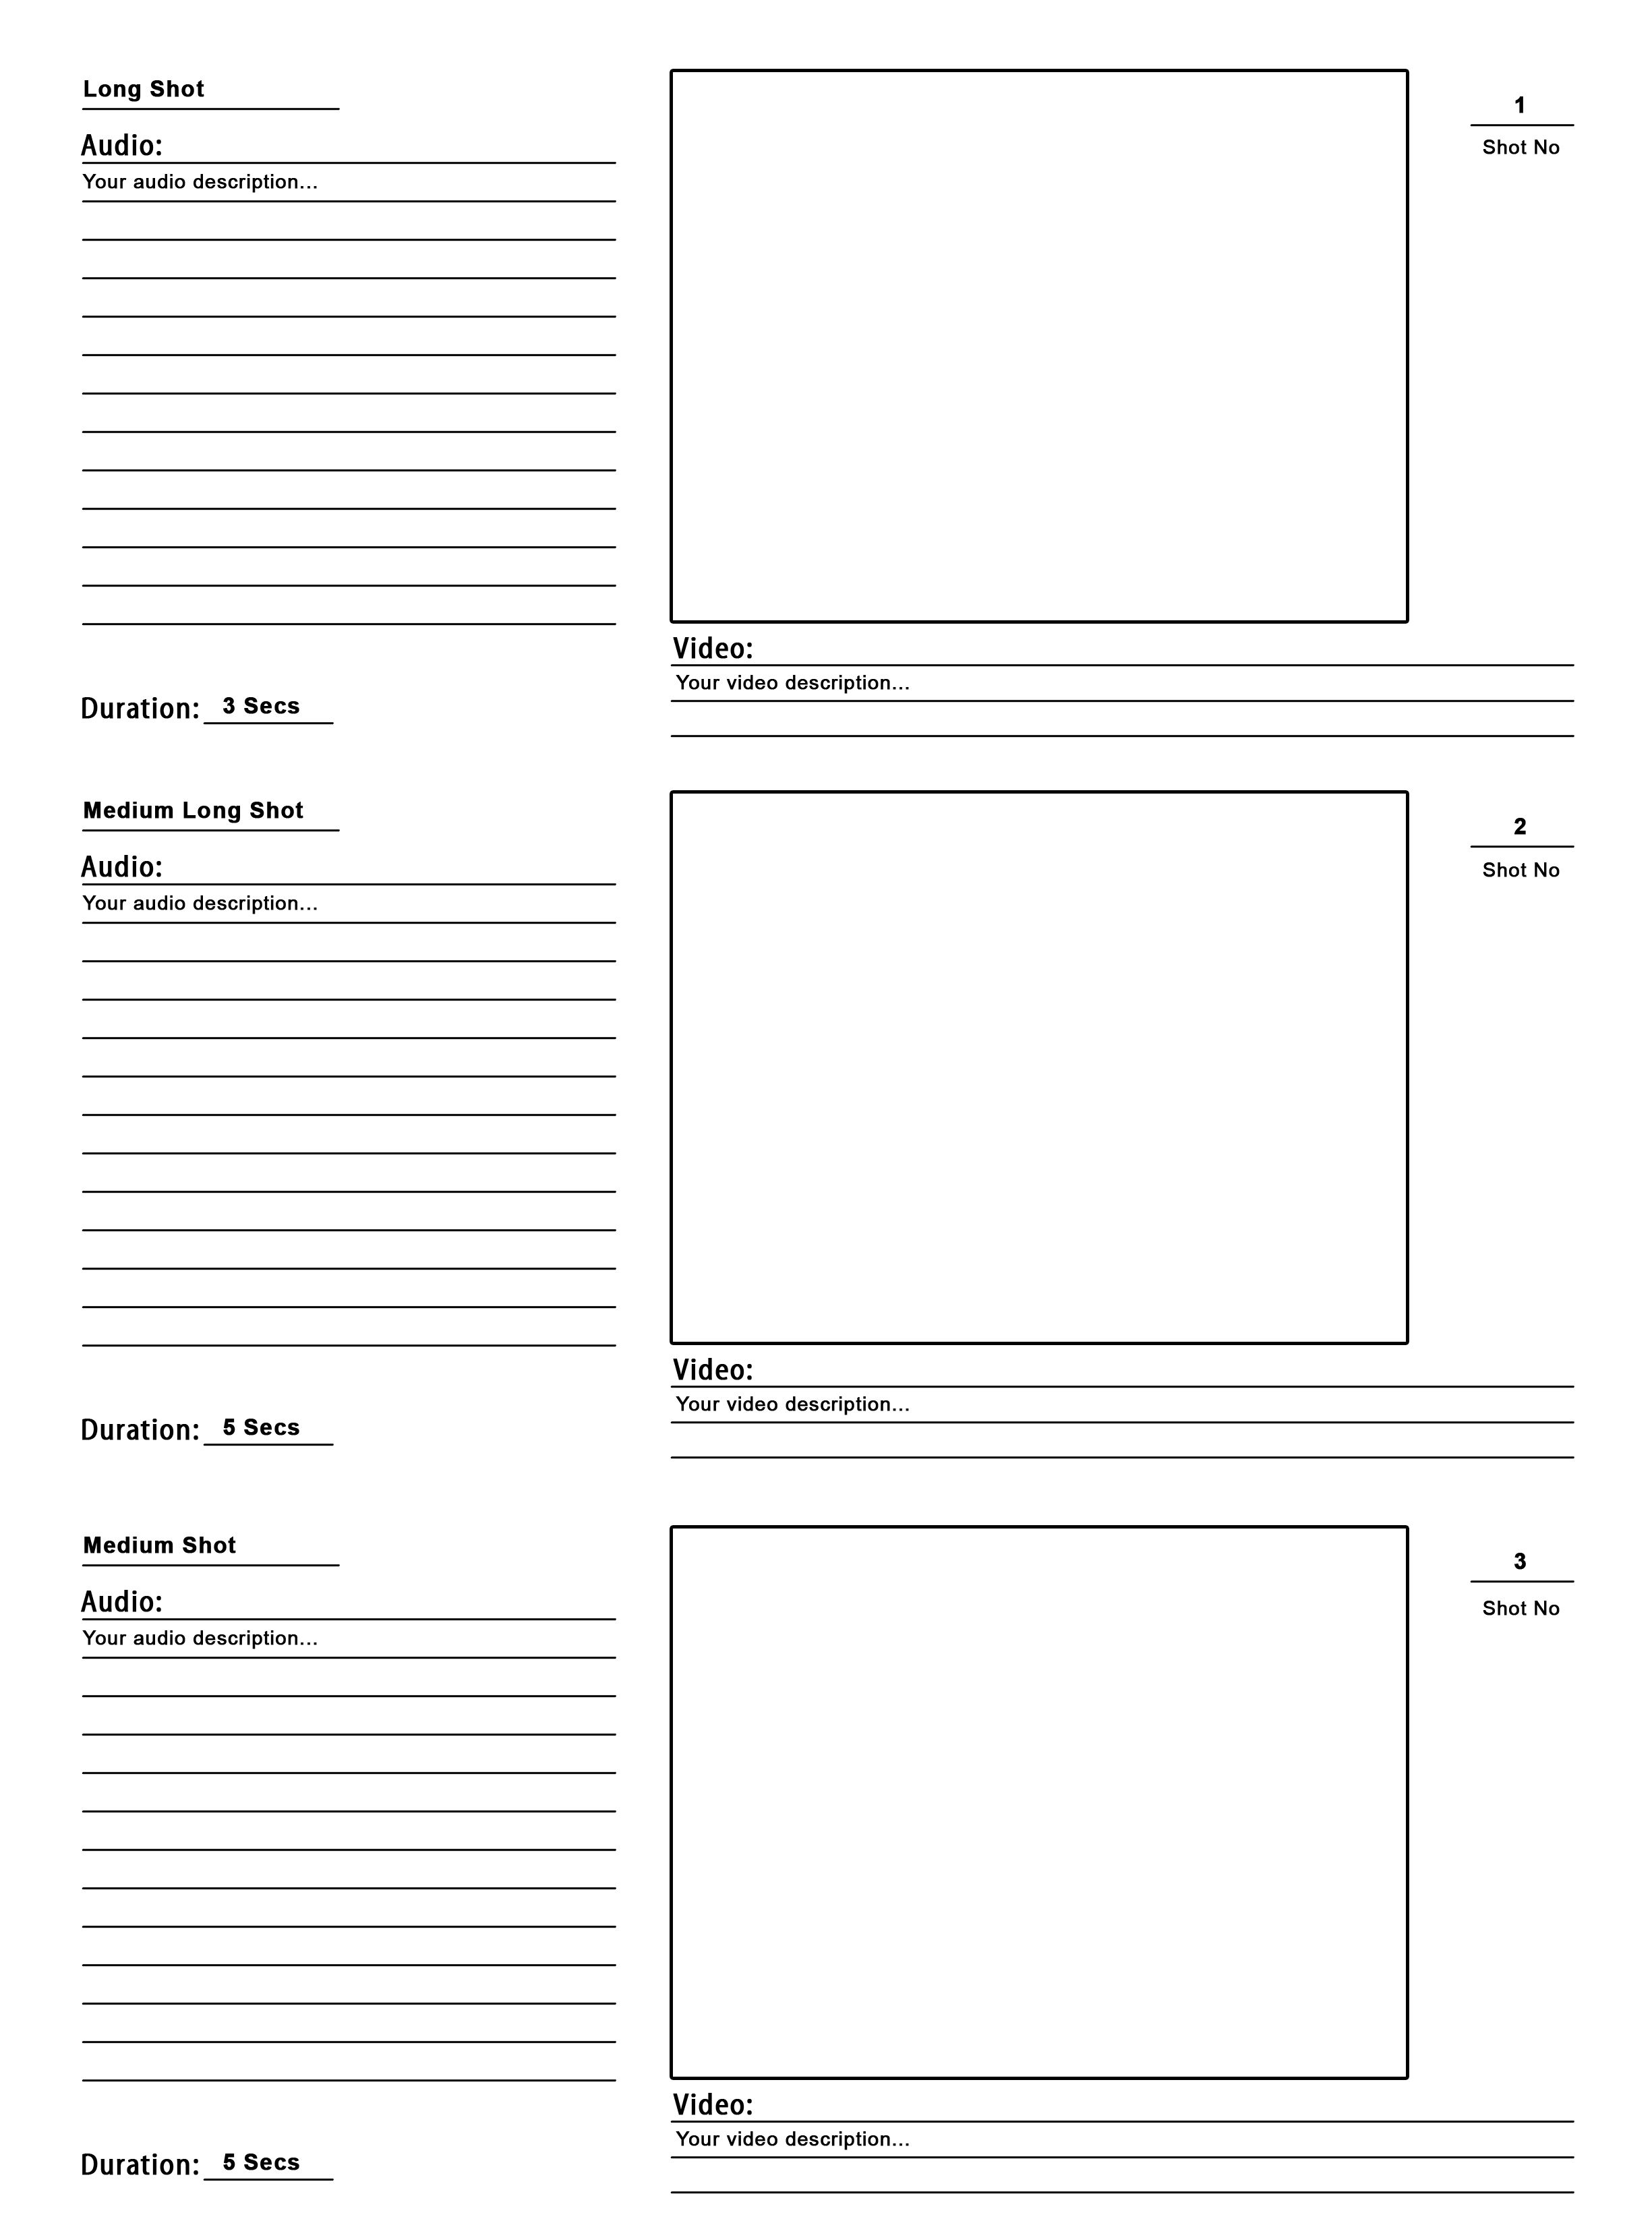 Storyboard Template PSD For Your Pre Production The Design Work - Production work order template